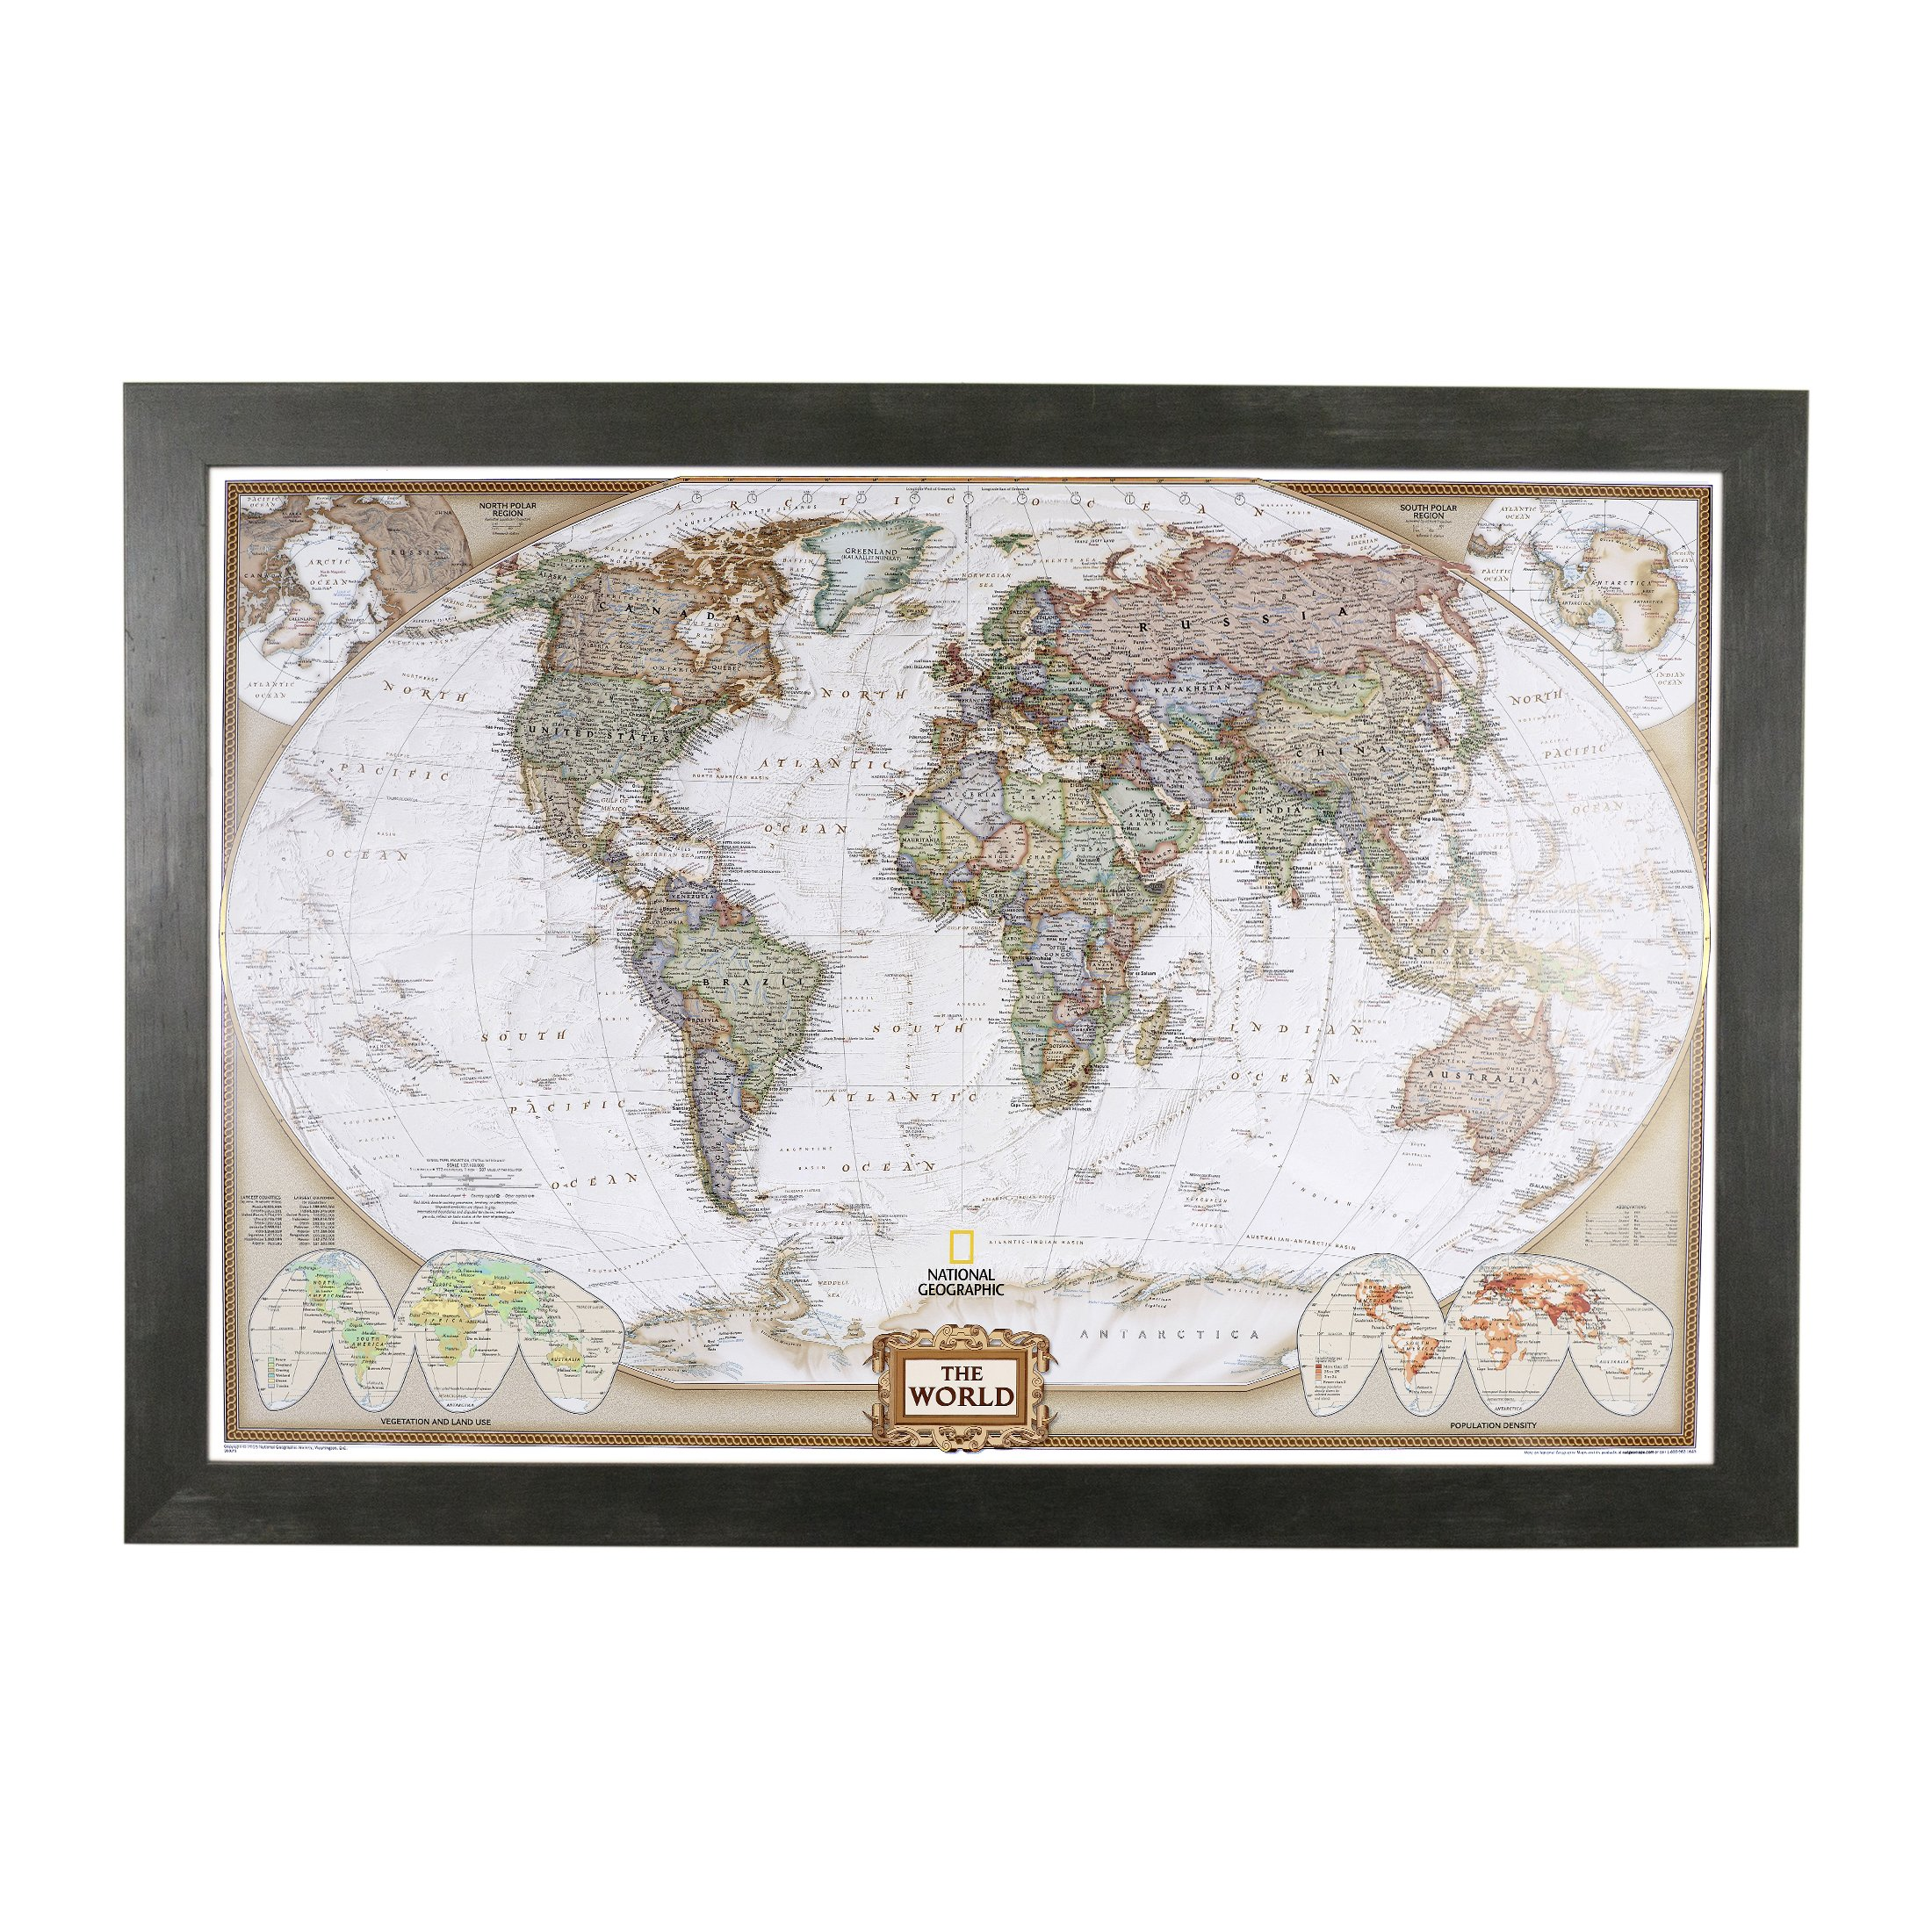 Executive World Push Pin Travel Map with Rustic Black Frame and Pins 24 x 36 by Push Pin Travel Maps